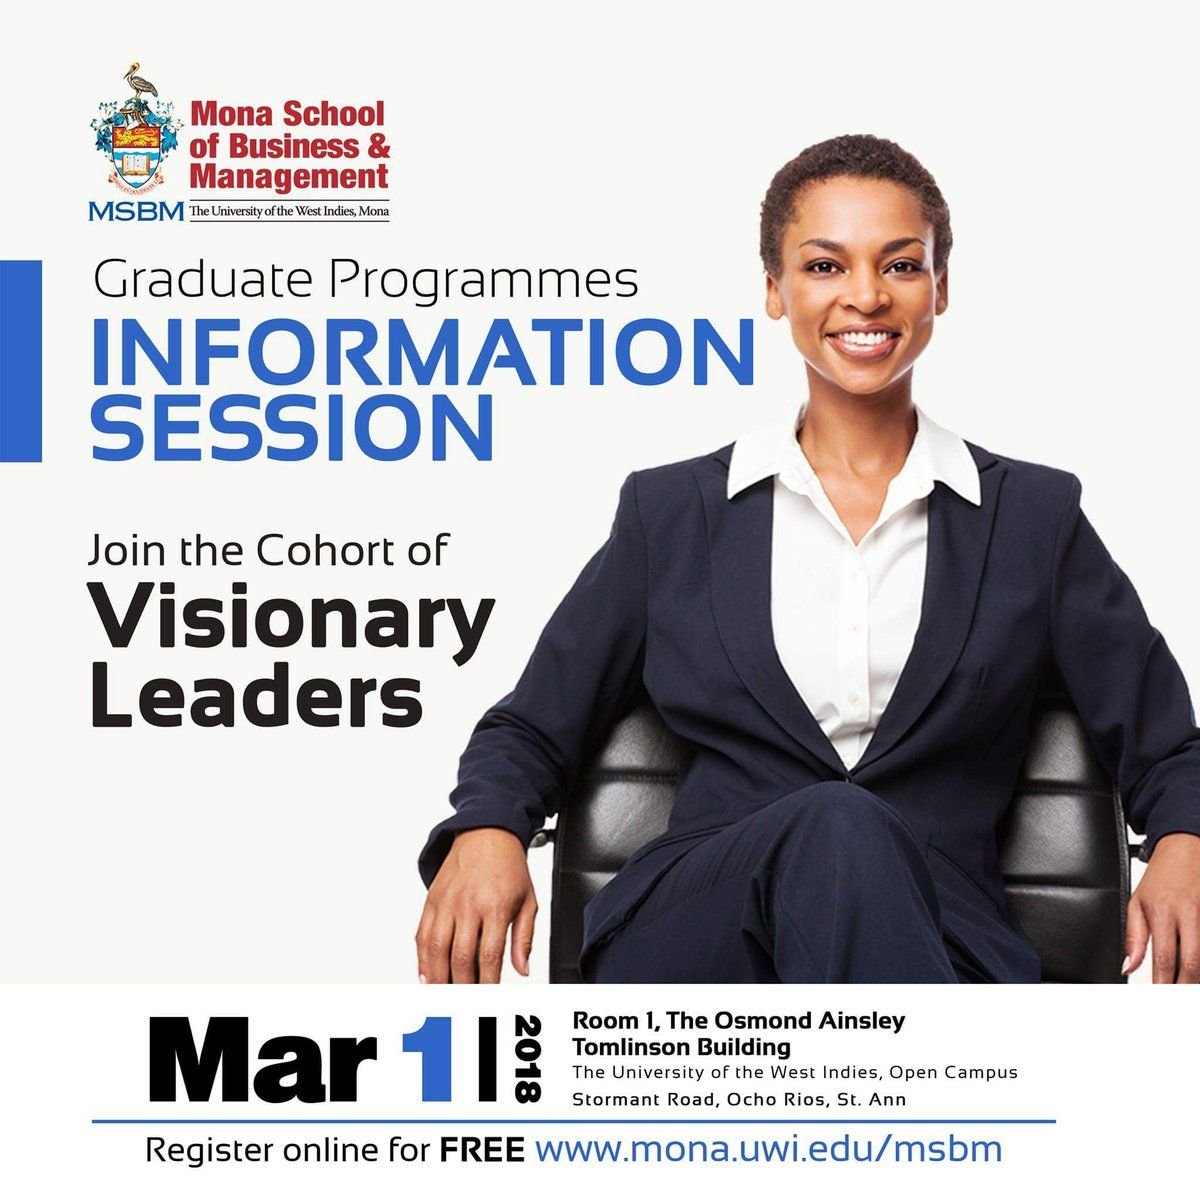 MSBM MBA Graduates stand out. Join the cohort of Game